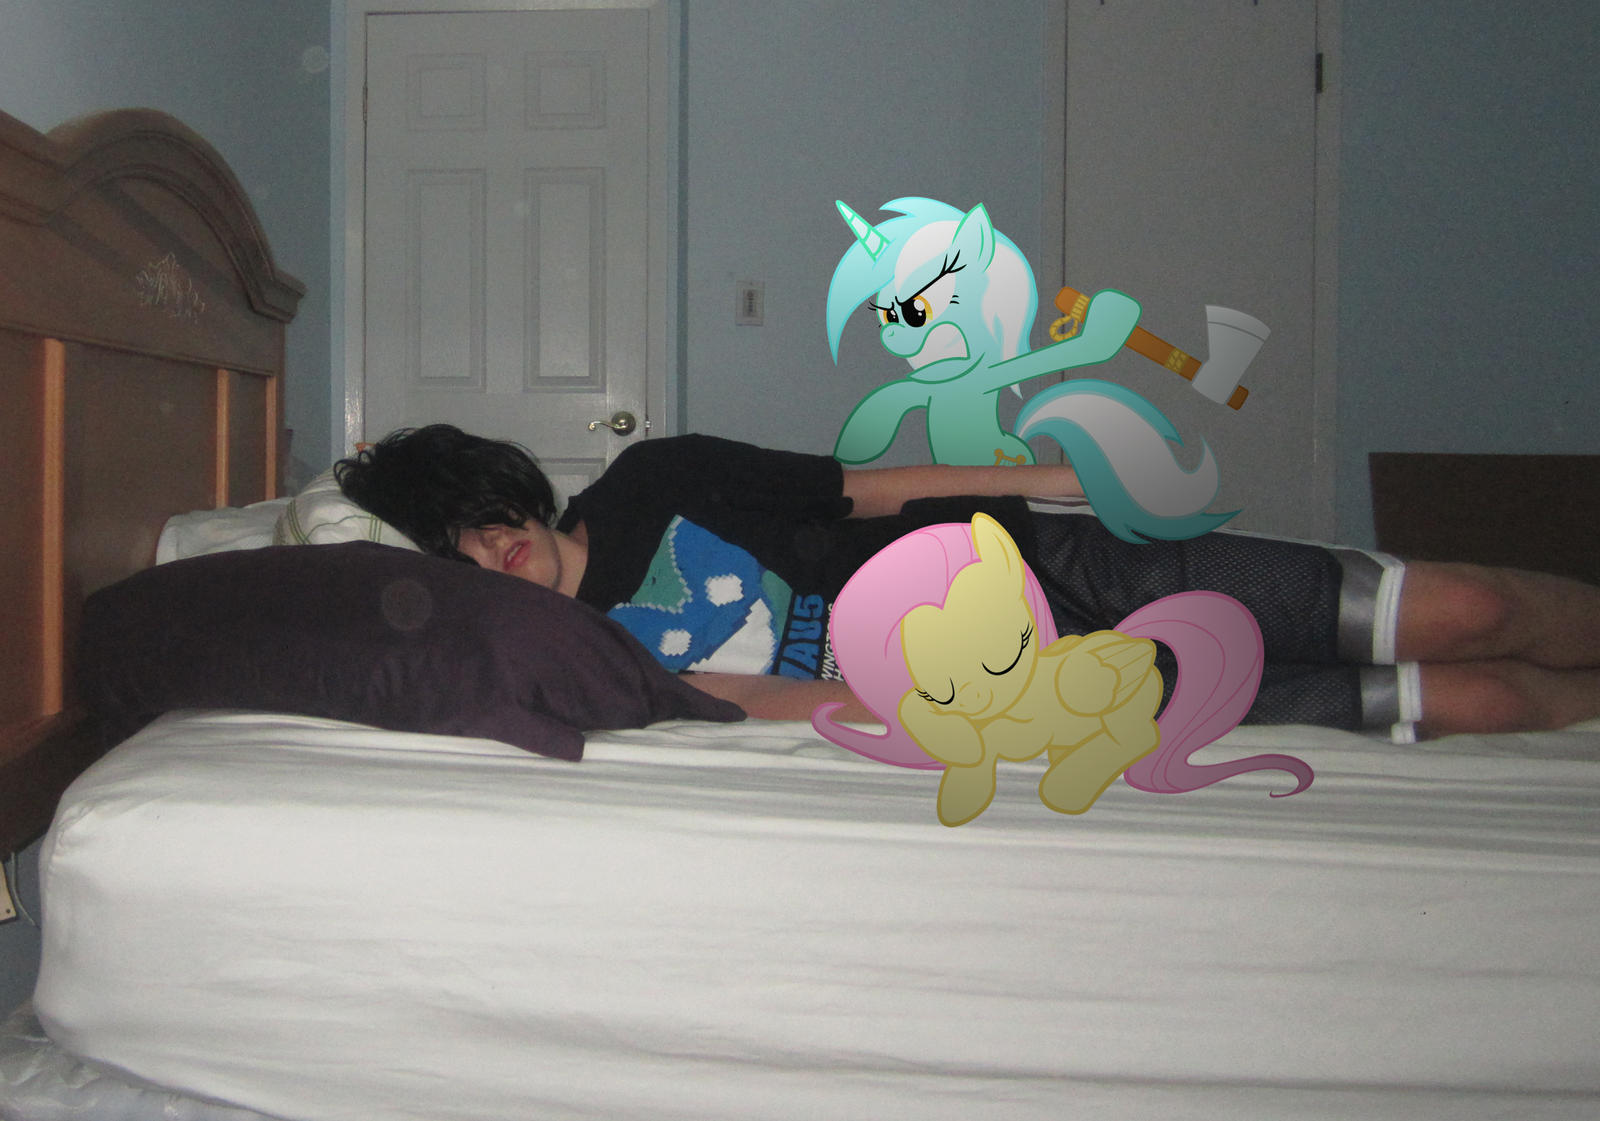 Lyra wants to kill me   by MetalGriffen69. Me kissing Fluttershy by MetalGriffen69 on DeviantArt